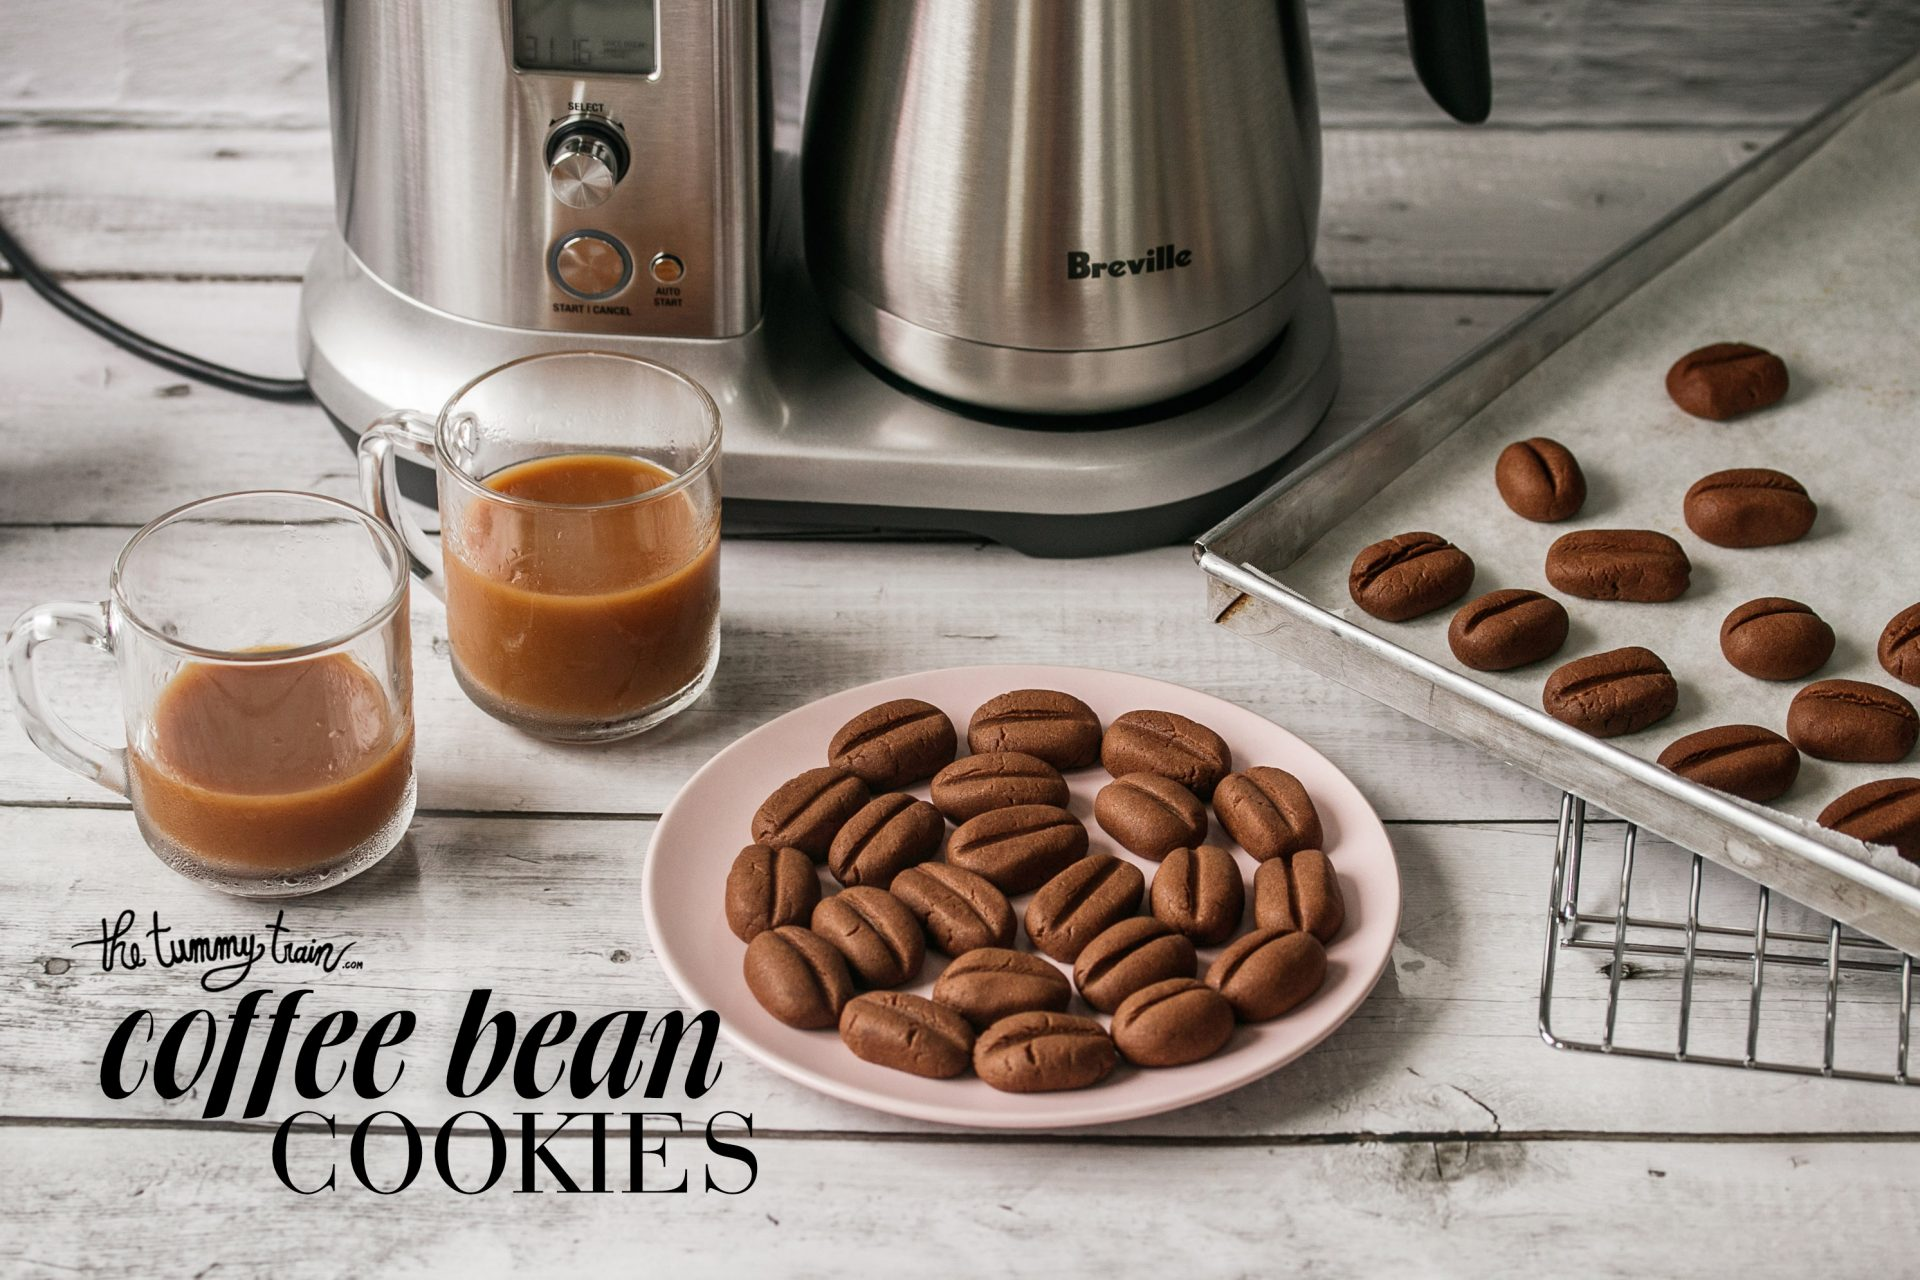 Coffee Bean Cookies Recipe Feat Breville The Tummy Train